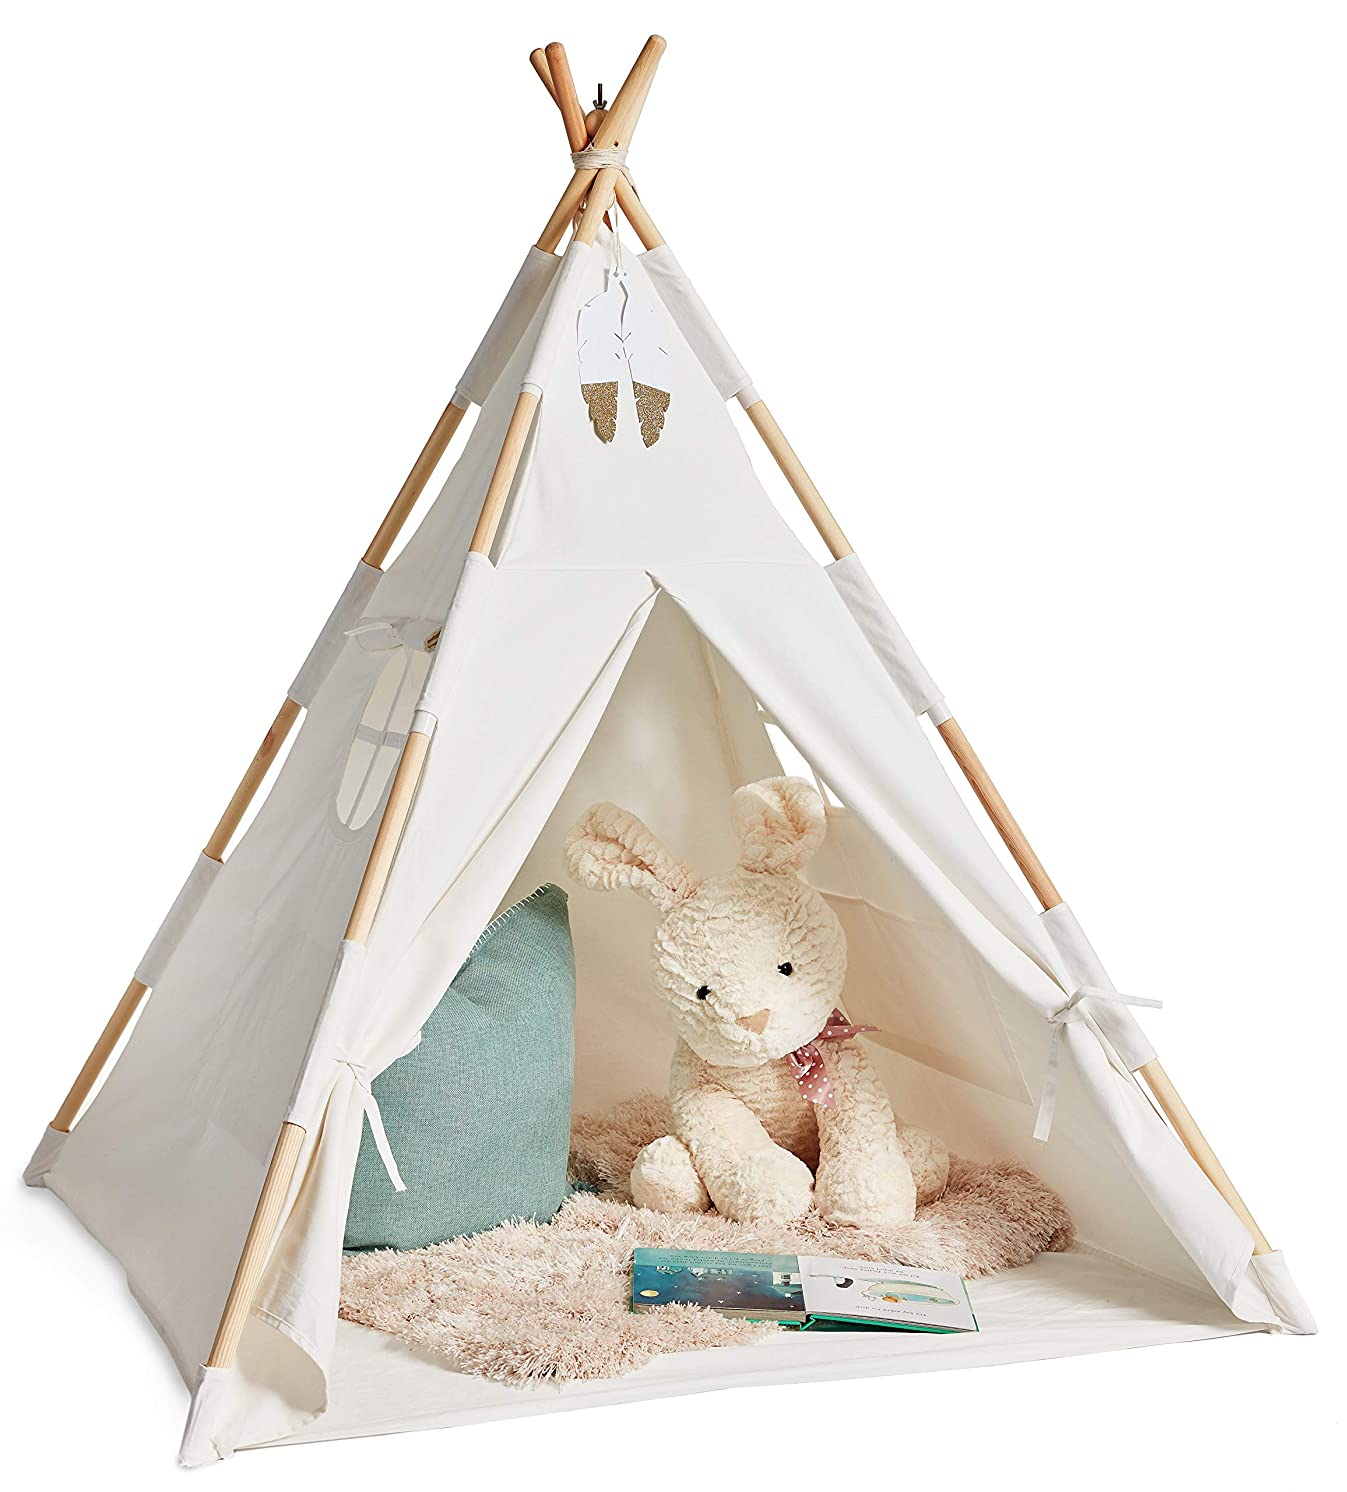 Eqoya Teepee Tent for Kids, Boys & Girls, Babies & Adults, 100% Cotton Indoor & Outdoor Toddler Play-House, Children Tee-Pee Tents, Kid Safe Natural Materials Tipi, with Bag and Mat, Extra Stable